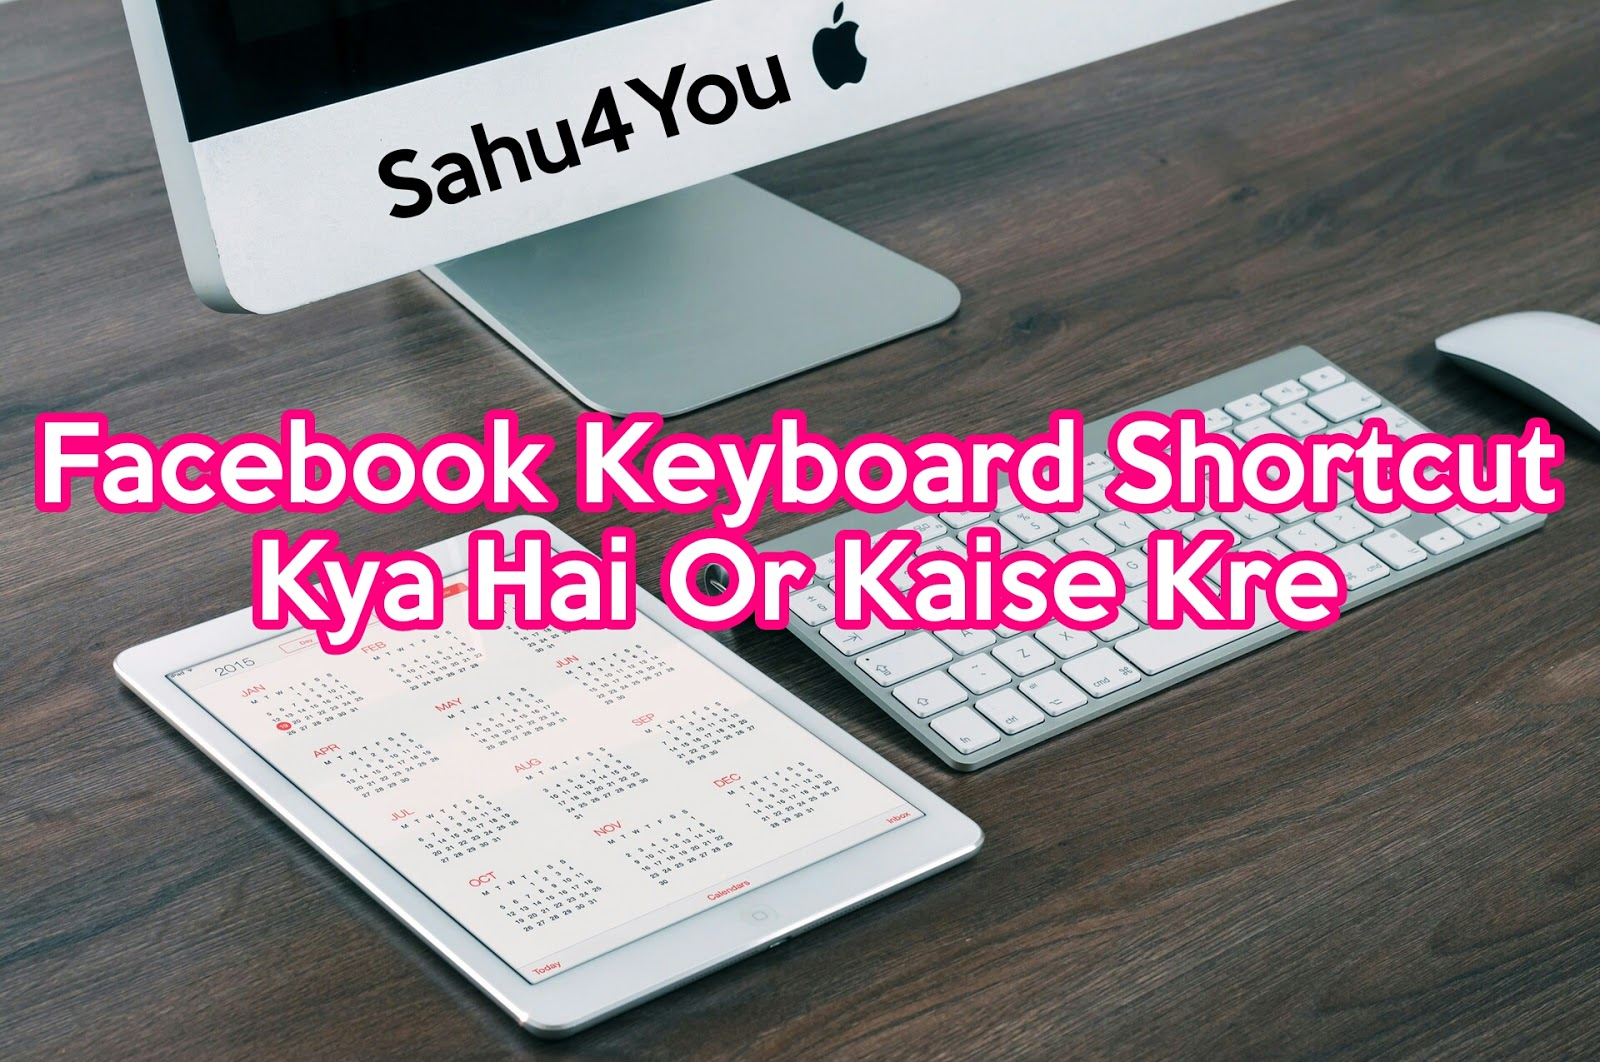 List of Facebook Shortcut KeyBoard and Facebook Emoticons